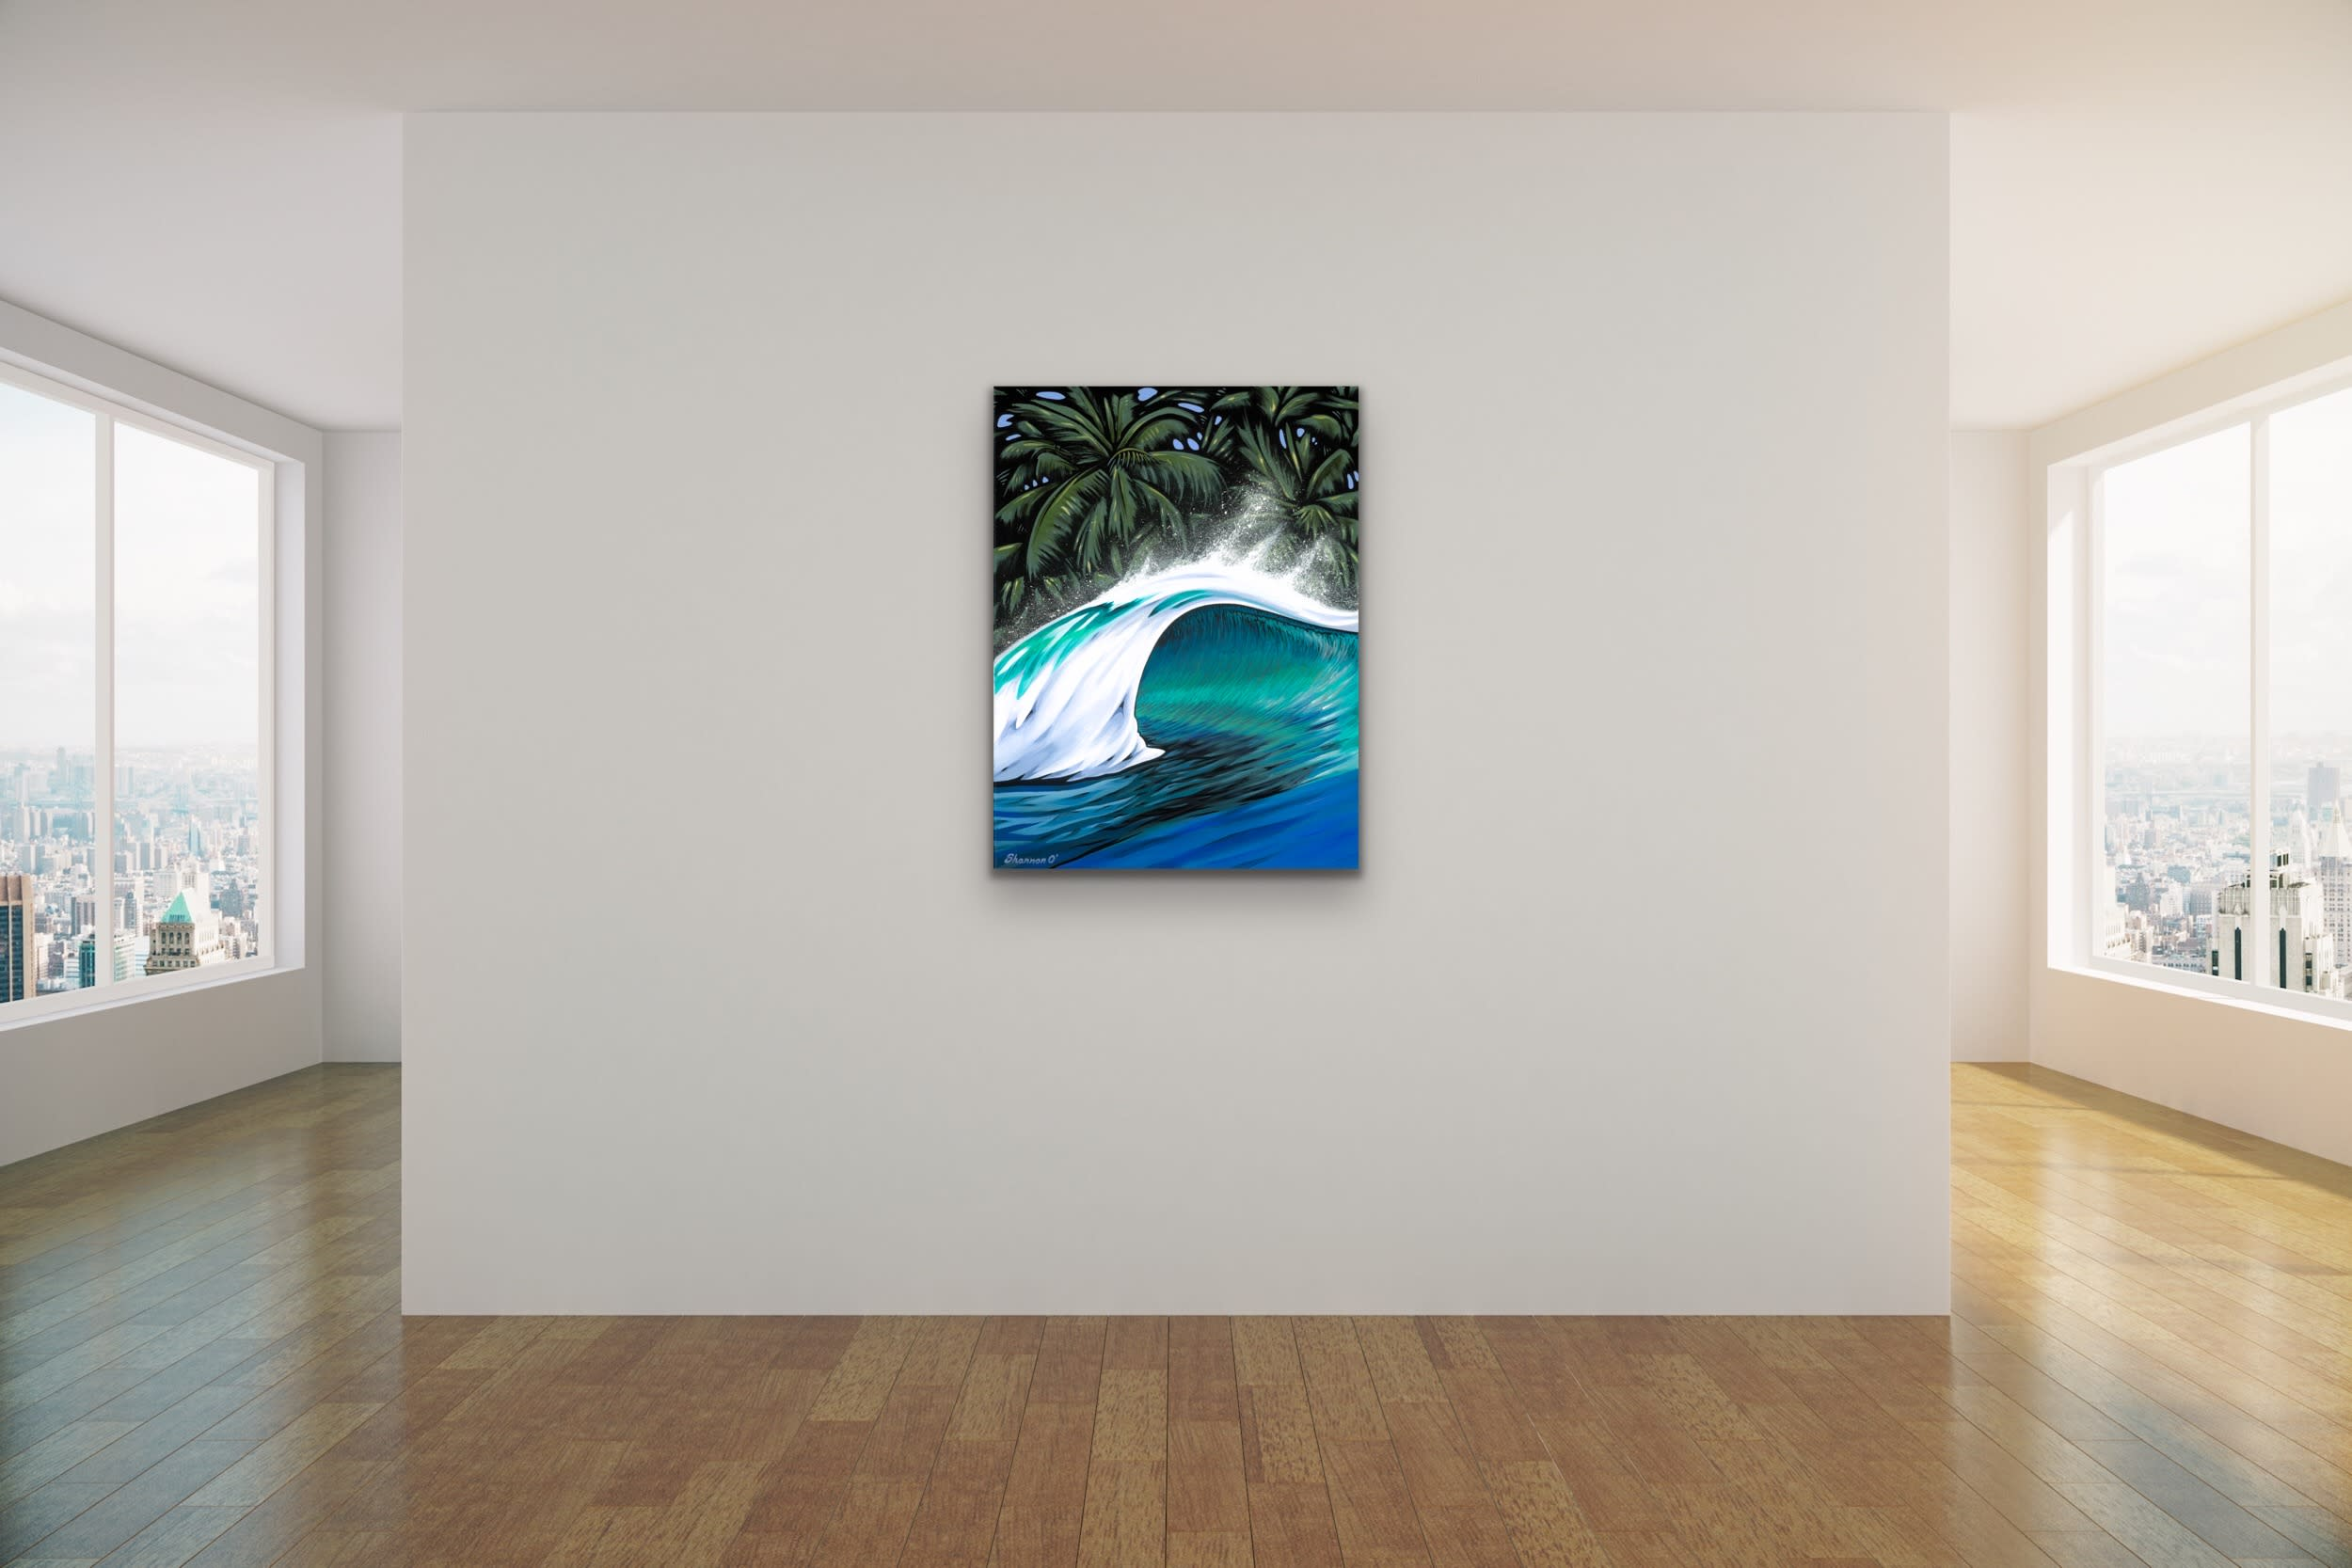 <div class='title'>           Shannon Oconnell Paintings Mock Ups Evo Art Maui Lahain Front Street Gallery Collect Popular Colorful Ocean Flowers Scenery Waves 12         </div>